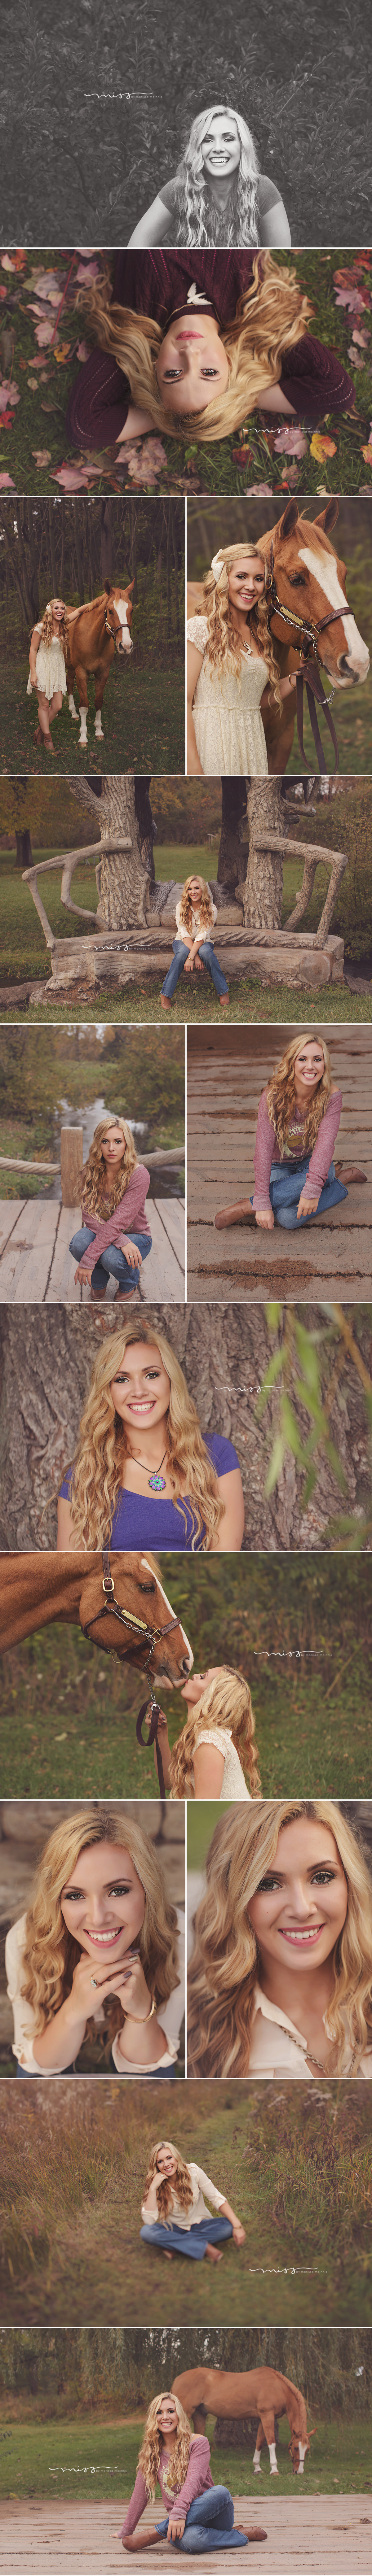 Manchester Michigan Senior Photographer | Savanna 1